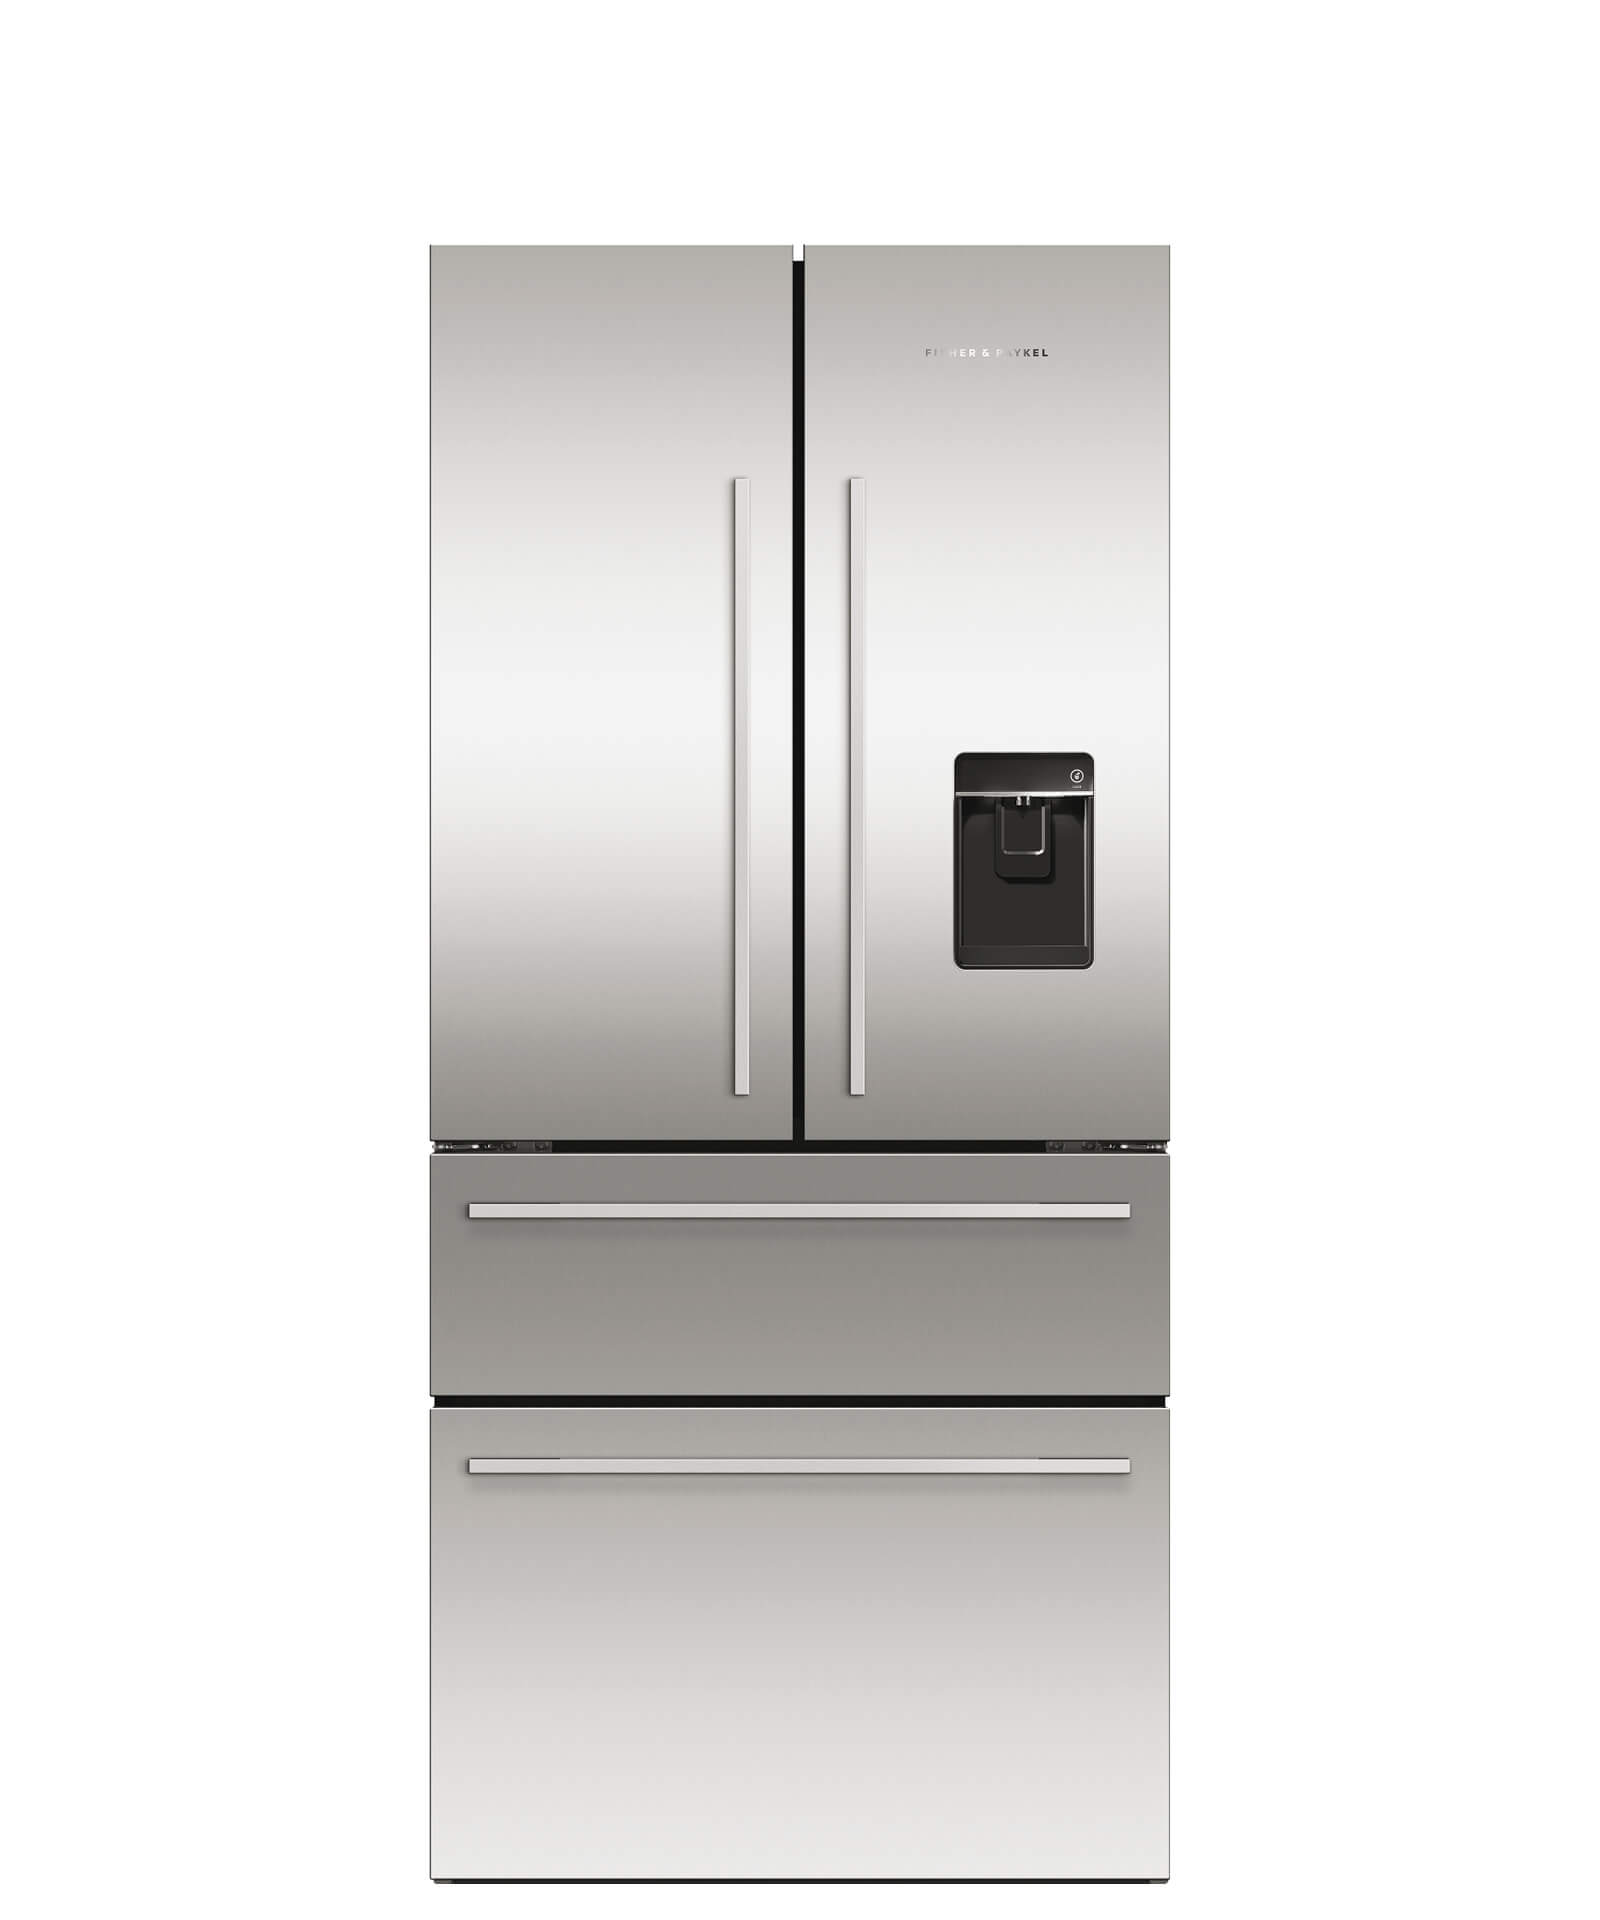 Model: RF172GDUX1 | Fisher and Paykel ActiveSmart™ Refrigerator - 16.9 cu ft. counter depth French Door, Ice & Water